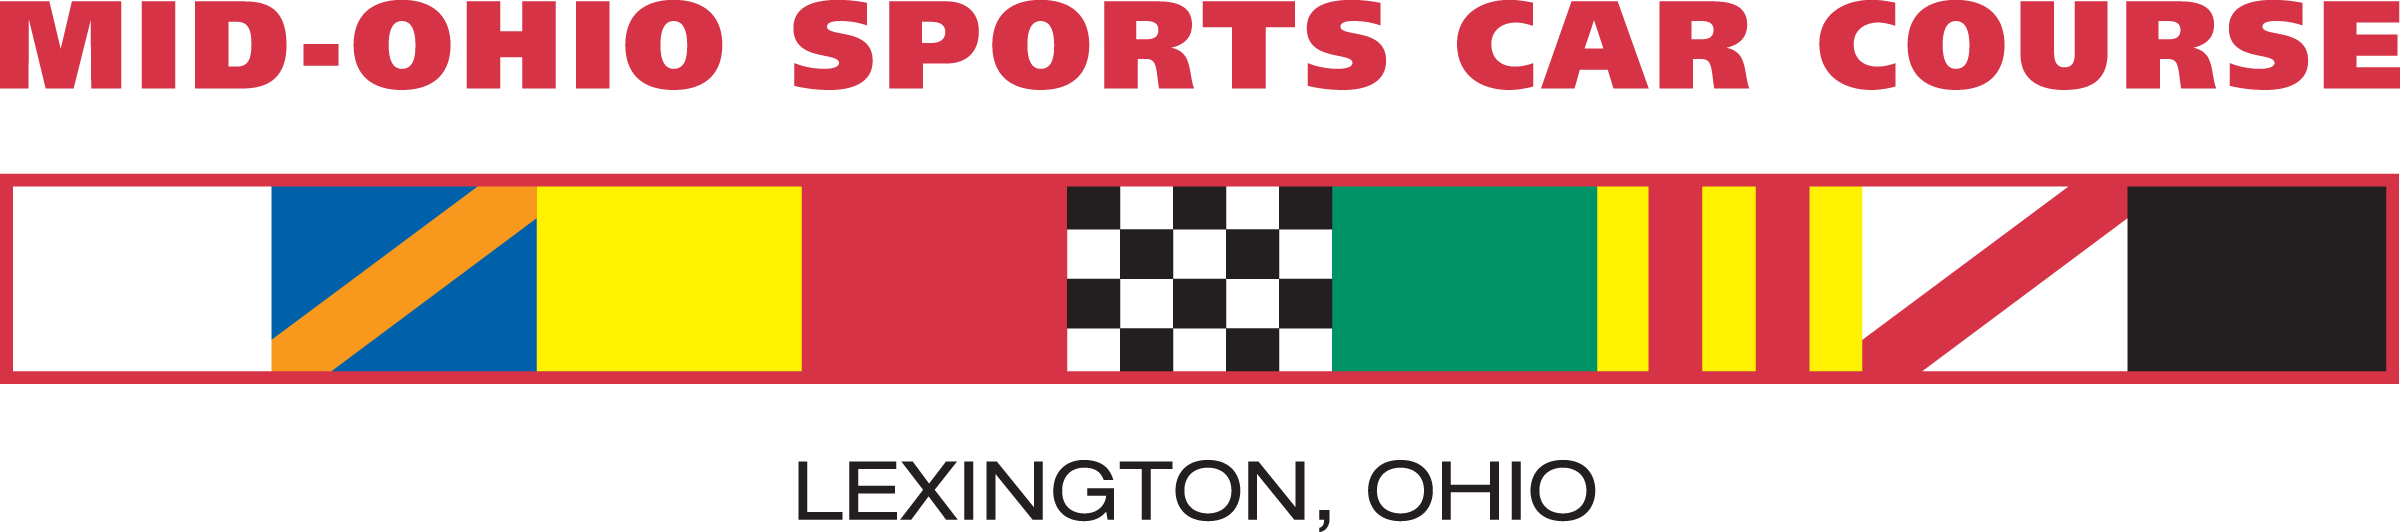 Mid Ohio Sports Car Course